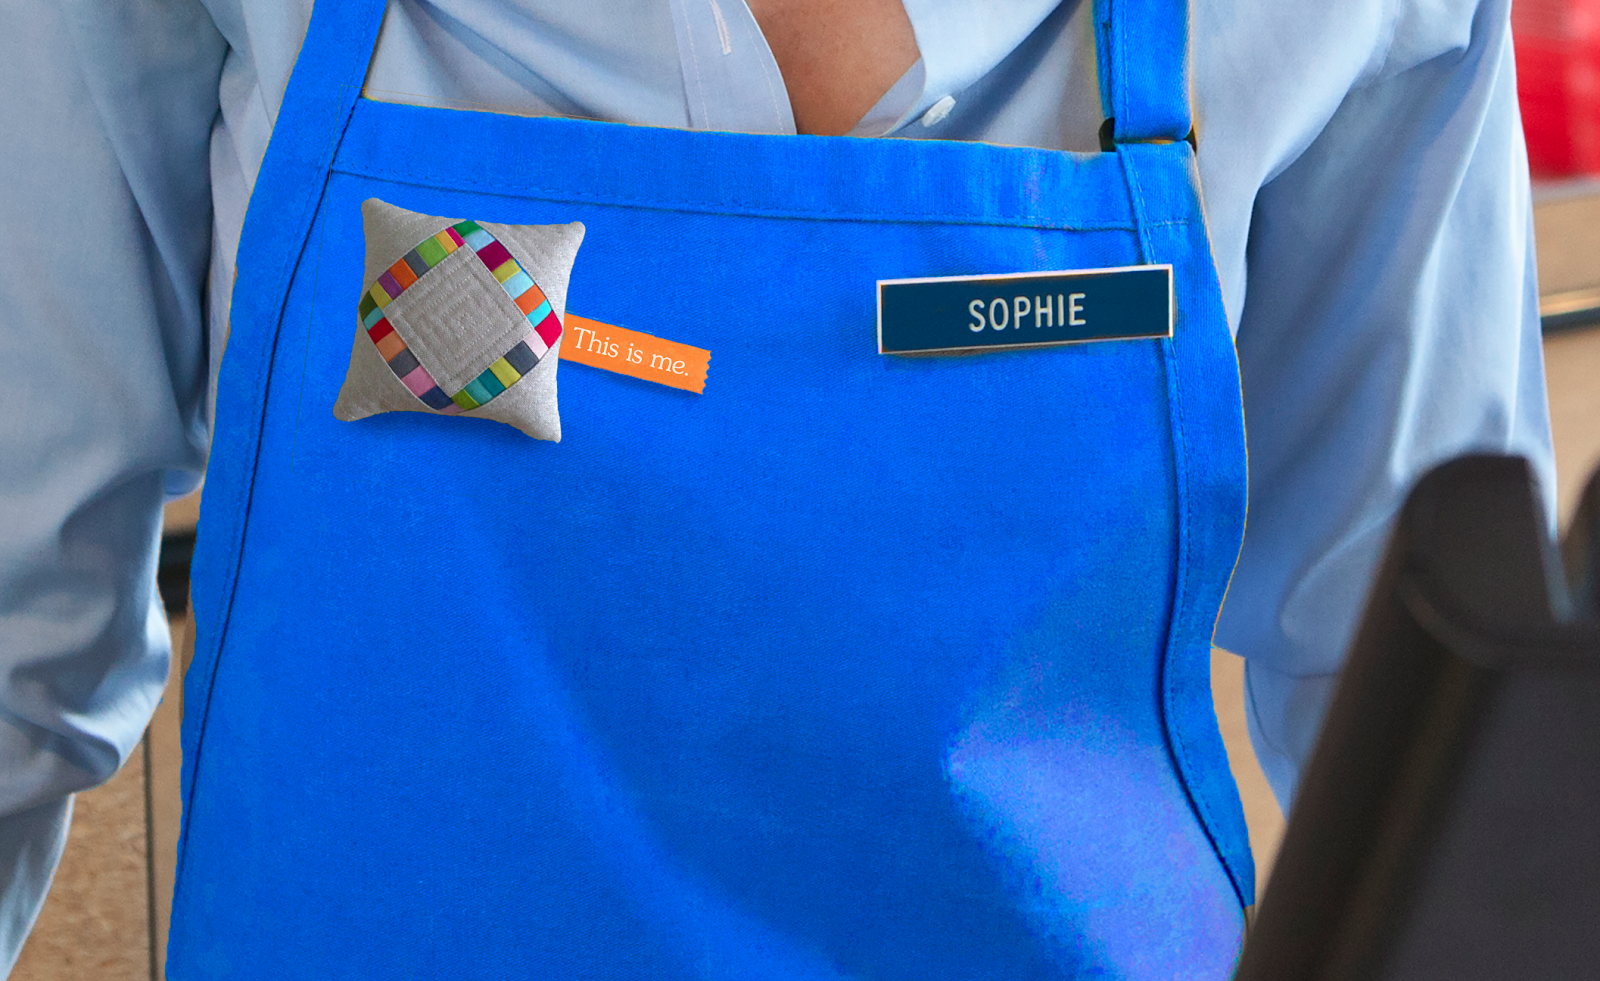 We turned all of Pier 1 employees pillows, generated from their Instagram feeds, into a personalized tag they wear in stores.